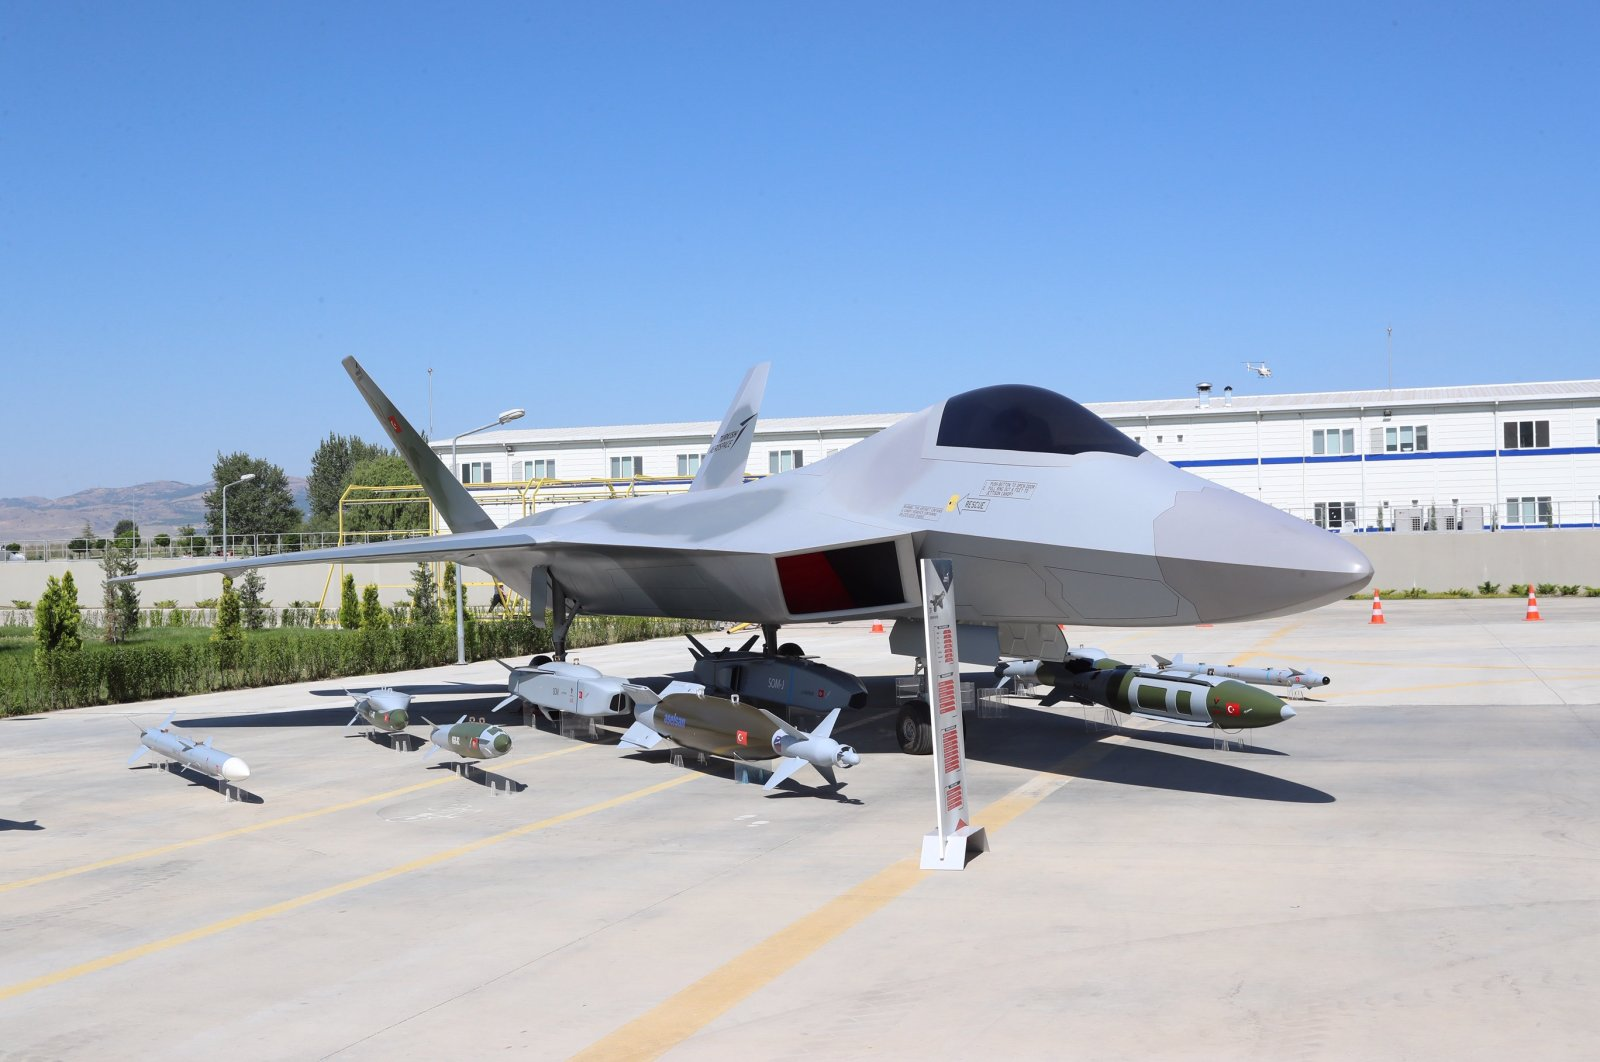 The prototype of Turkey's national combat aircraft presented at an aviation, space and technology fair held in Istanbul, September 16, 2019. (File Photo)